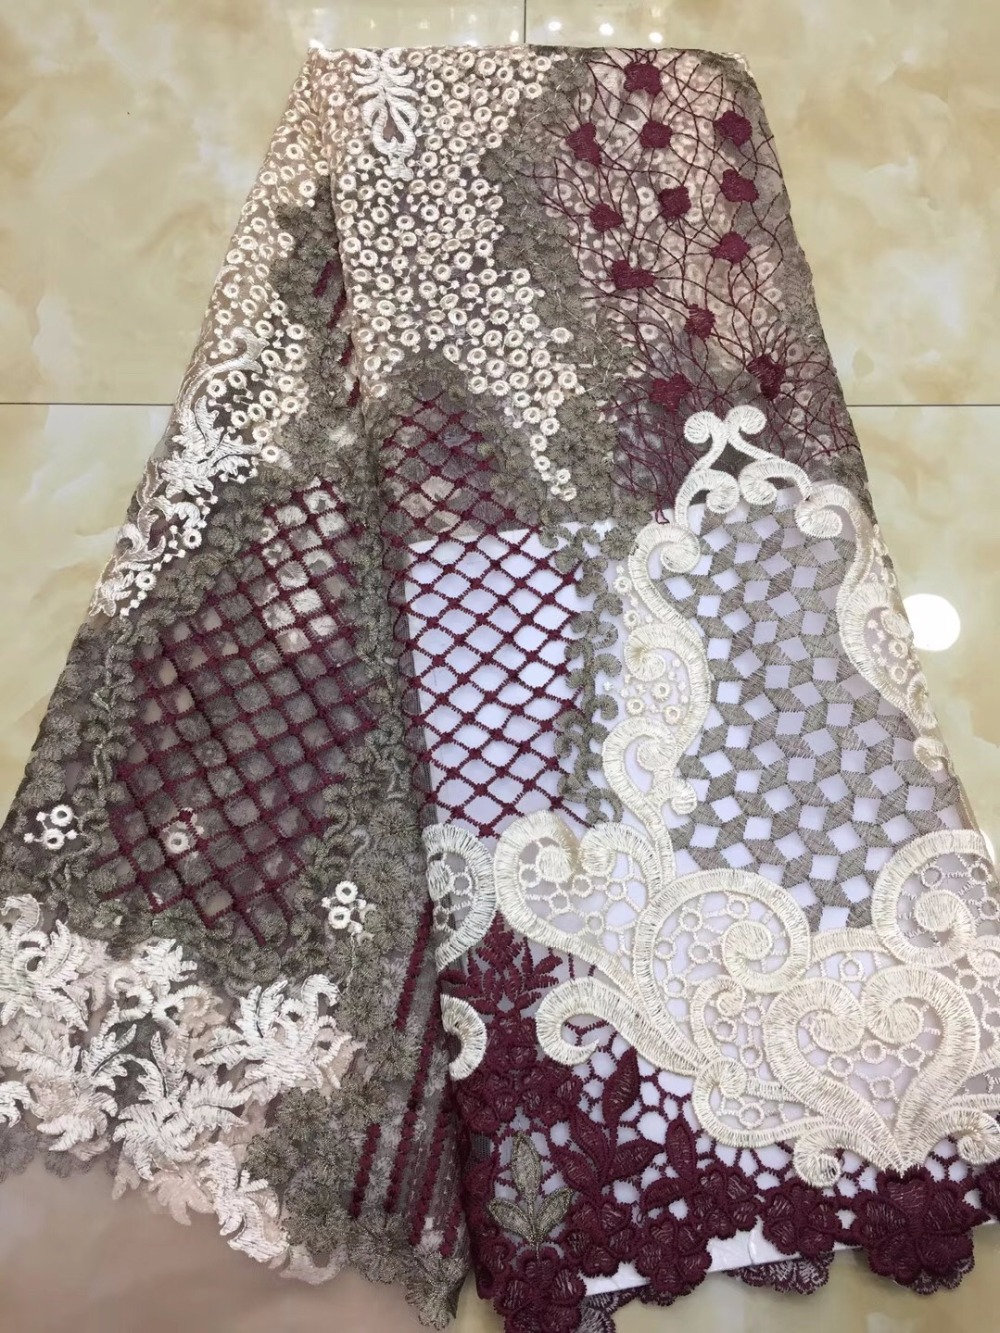 2019 High Quality Nigerian Lace Fabrics African French Net Lace Fabric Embroidered Tulle Mesh Lace Fabric-in Lace from Home & Garden    2